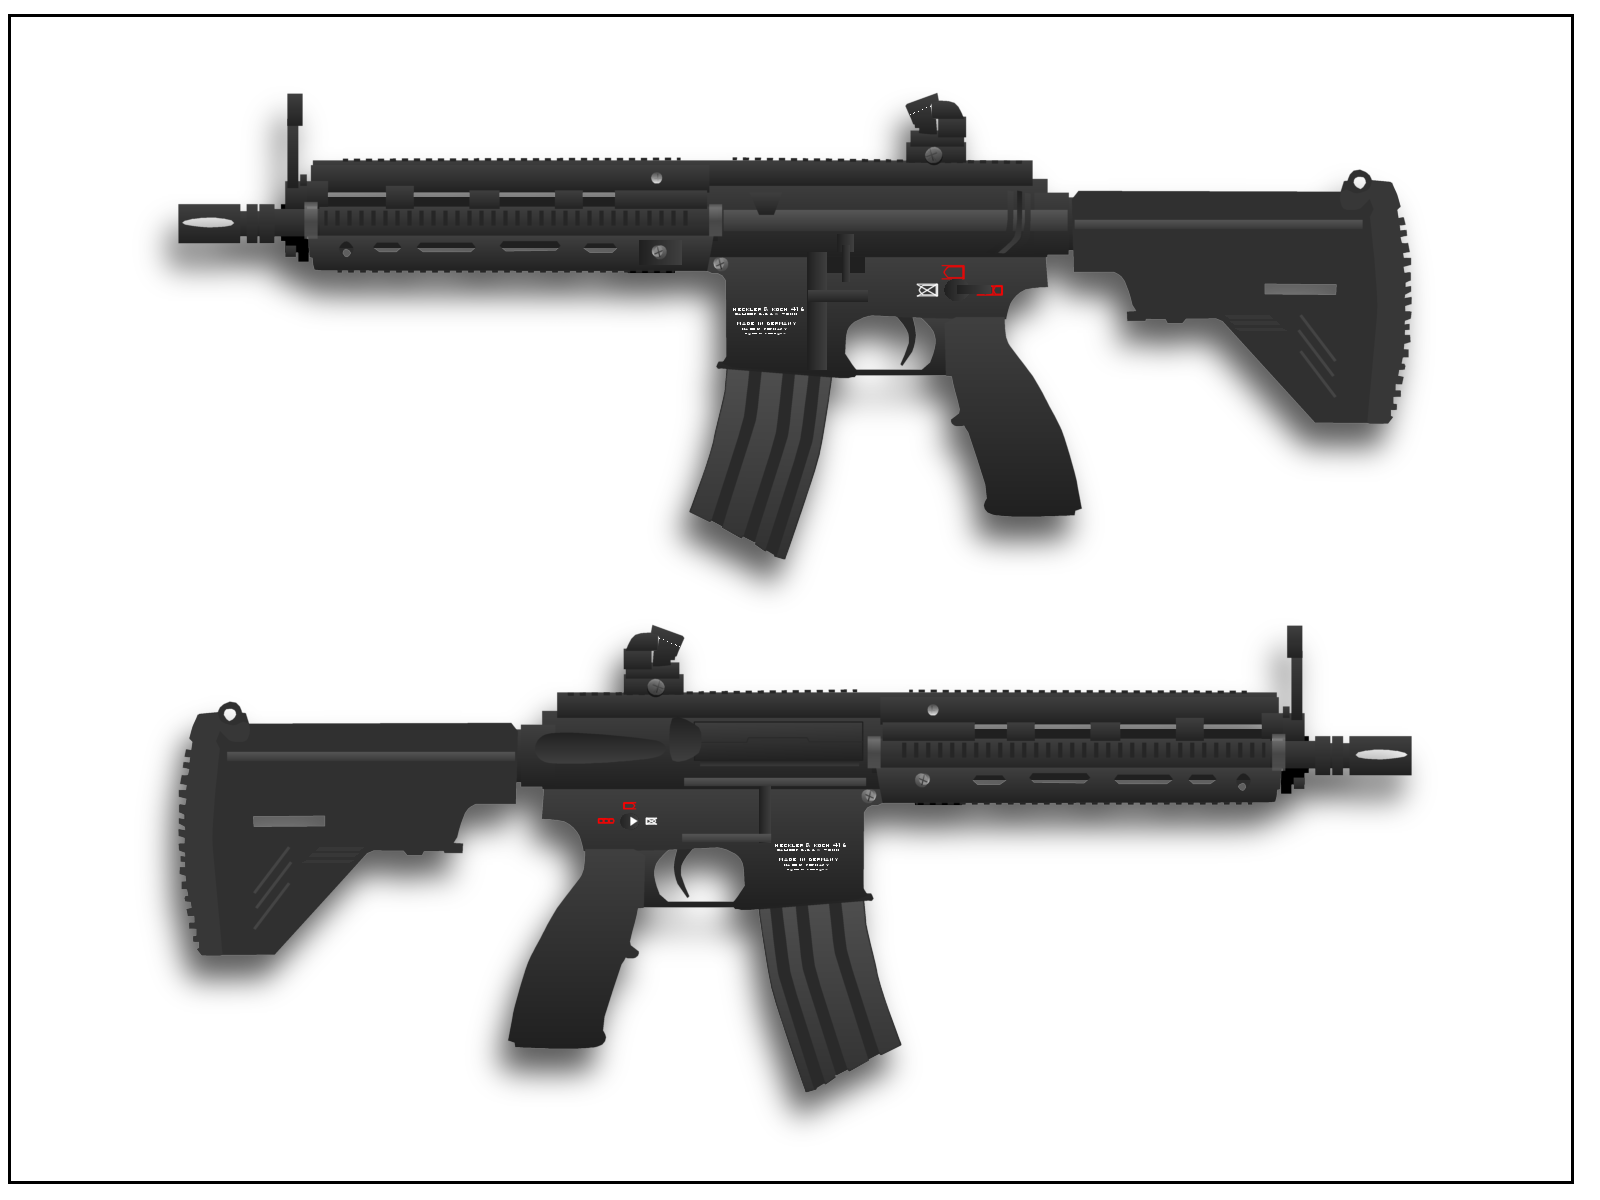 File:Hk-416.png - Wikimedia Co...